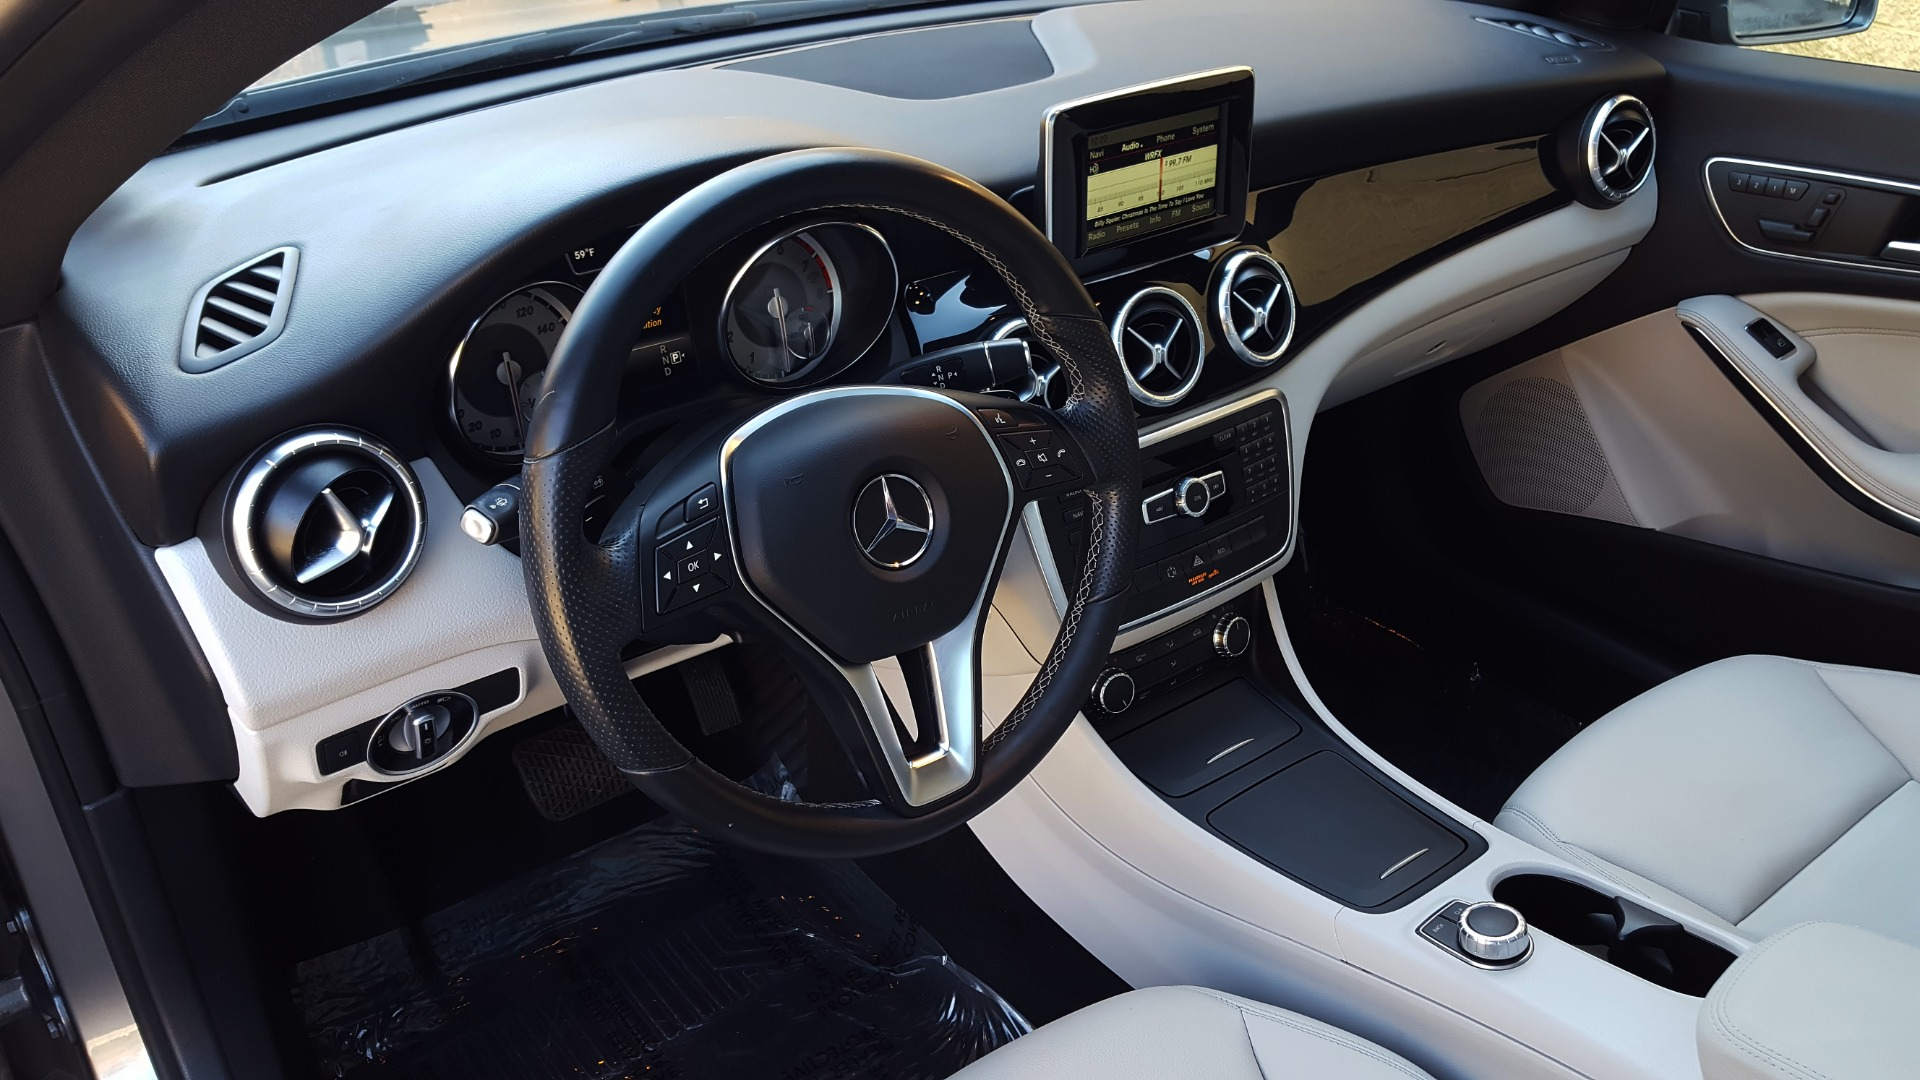 Used 2014 Mercedes-Benz CLA-CLASS CLA 250 / NAV / PANO-ROOF / BLIND SPOT ASSIST / XENON HEADLIGHTS for sale $19,995 at Formula Imports in Charlotte NC 28227 29